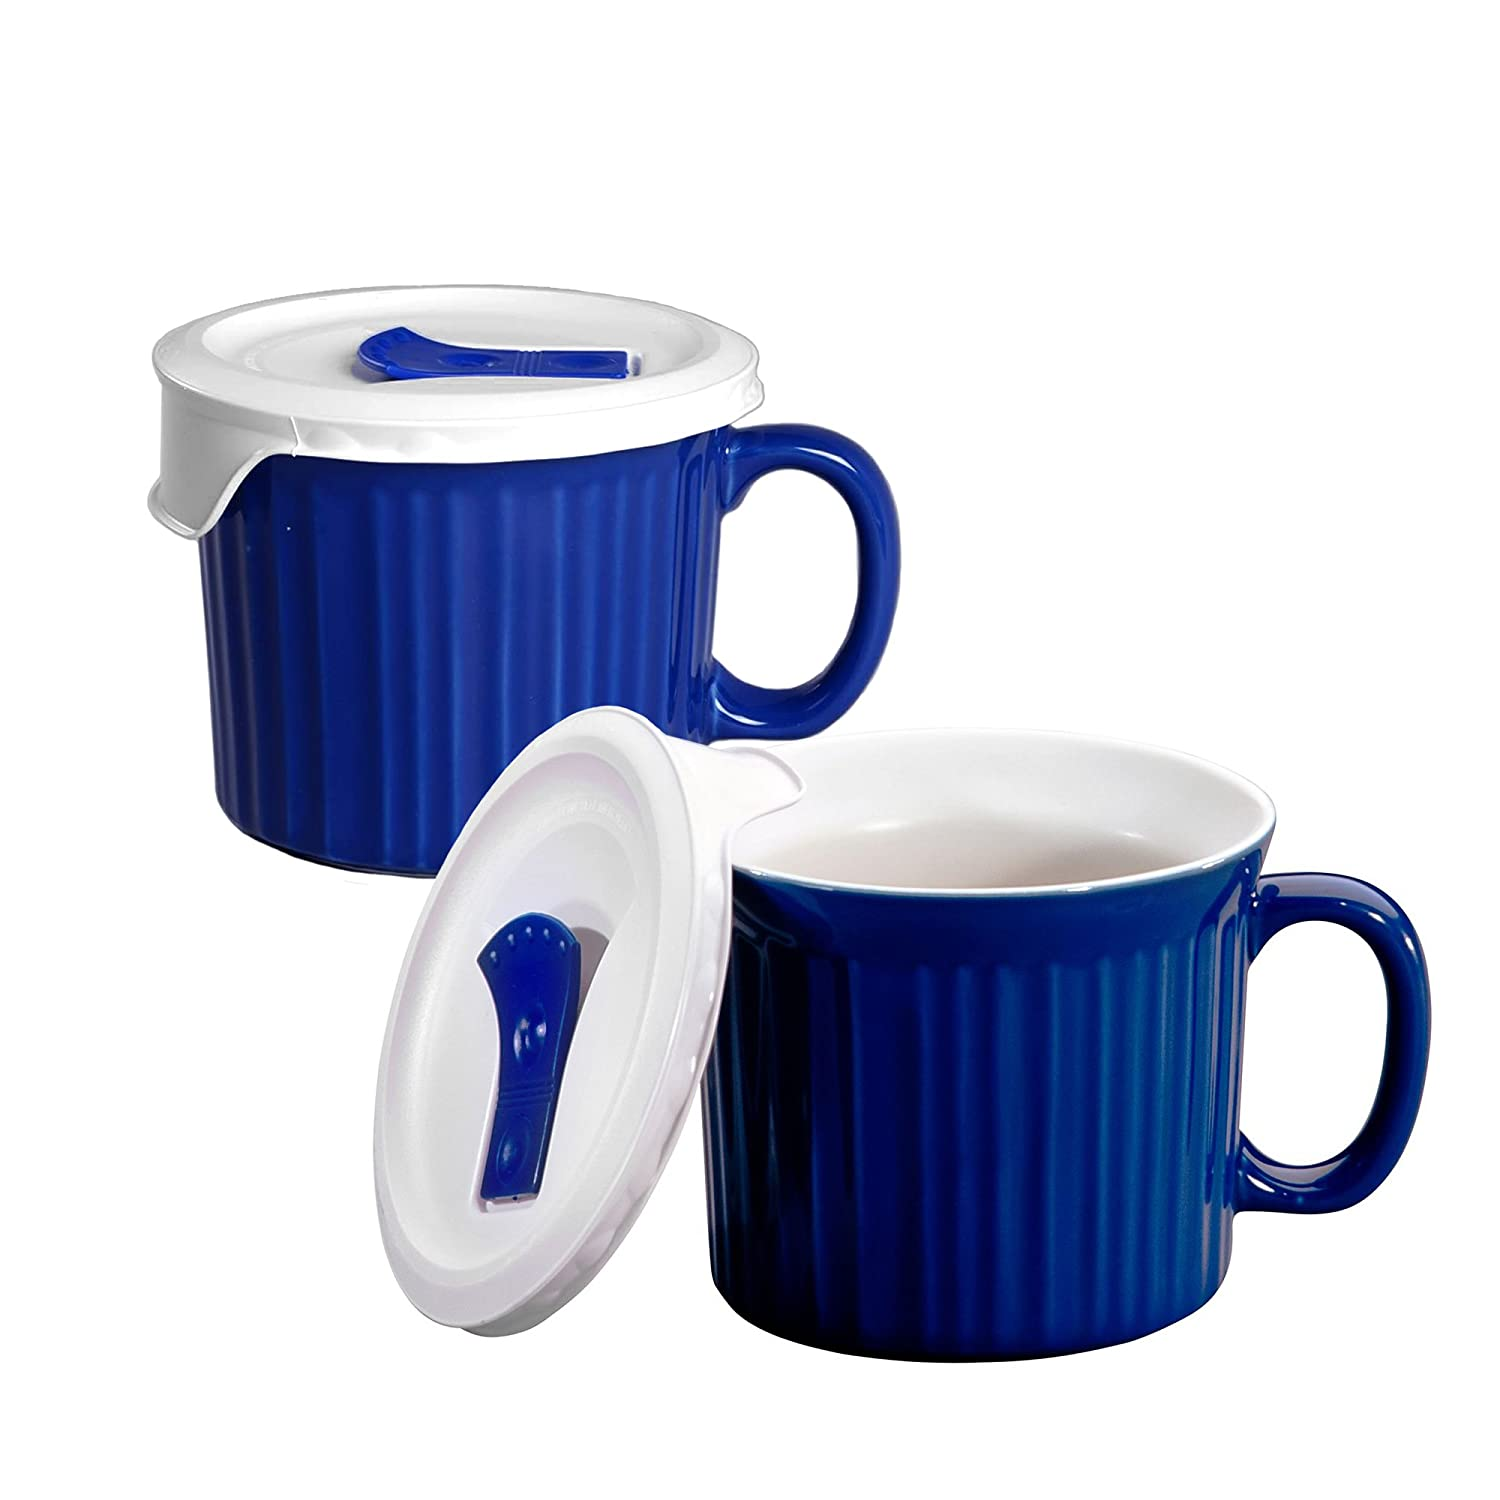 Corningware 20-Ounce Oven Safe Meal Mug with Vented Lid, Blueberry, Pack of 2